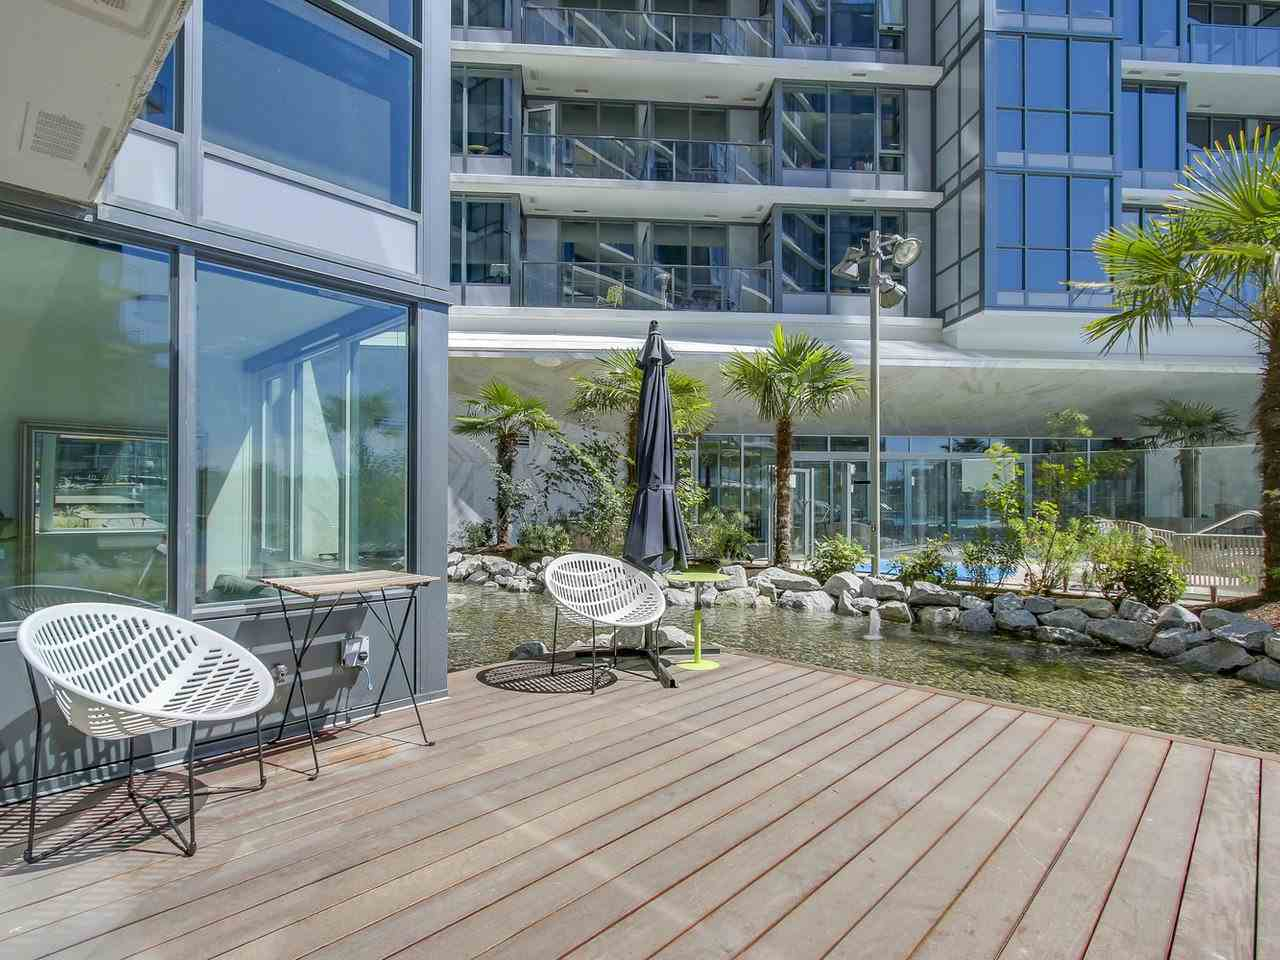 Condo Apartment at 303 68 SMITHE STREET, Unit 303, Vancouver West, British Columbia. Image 1